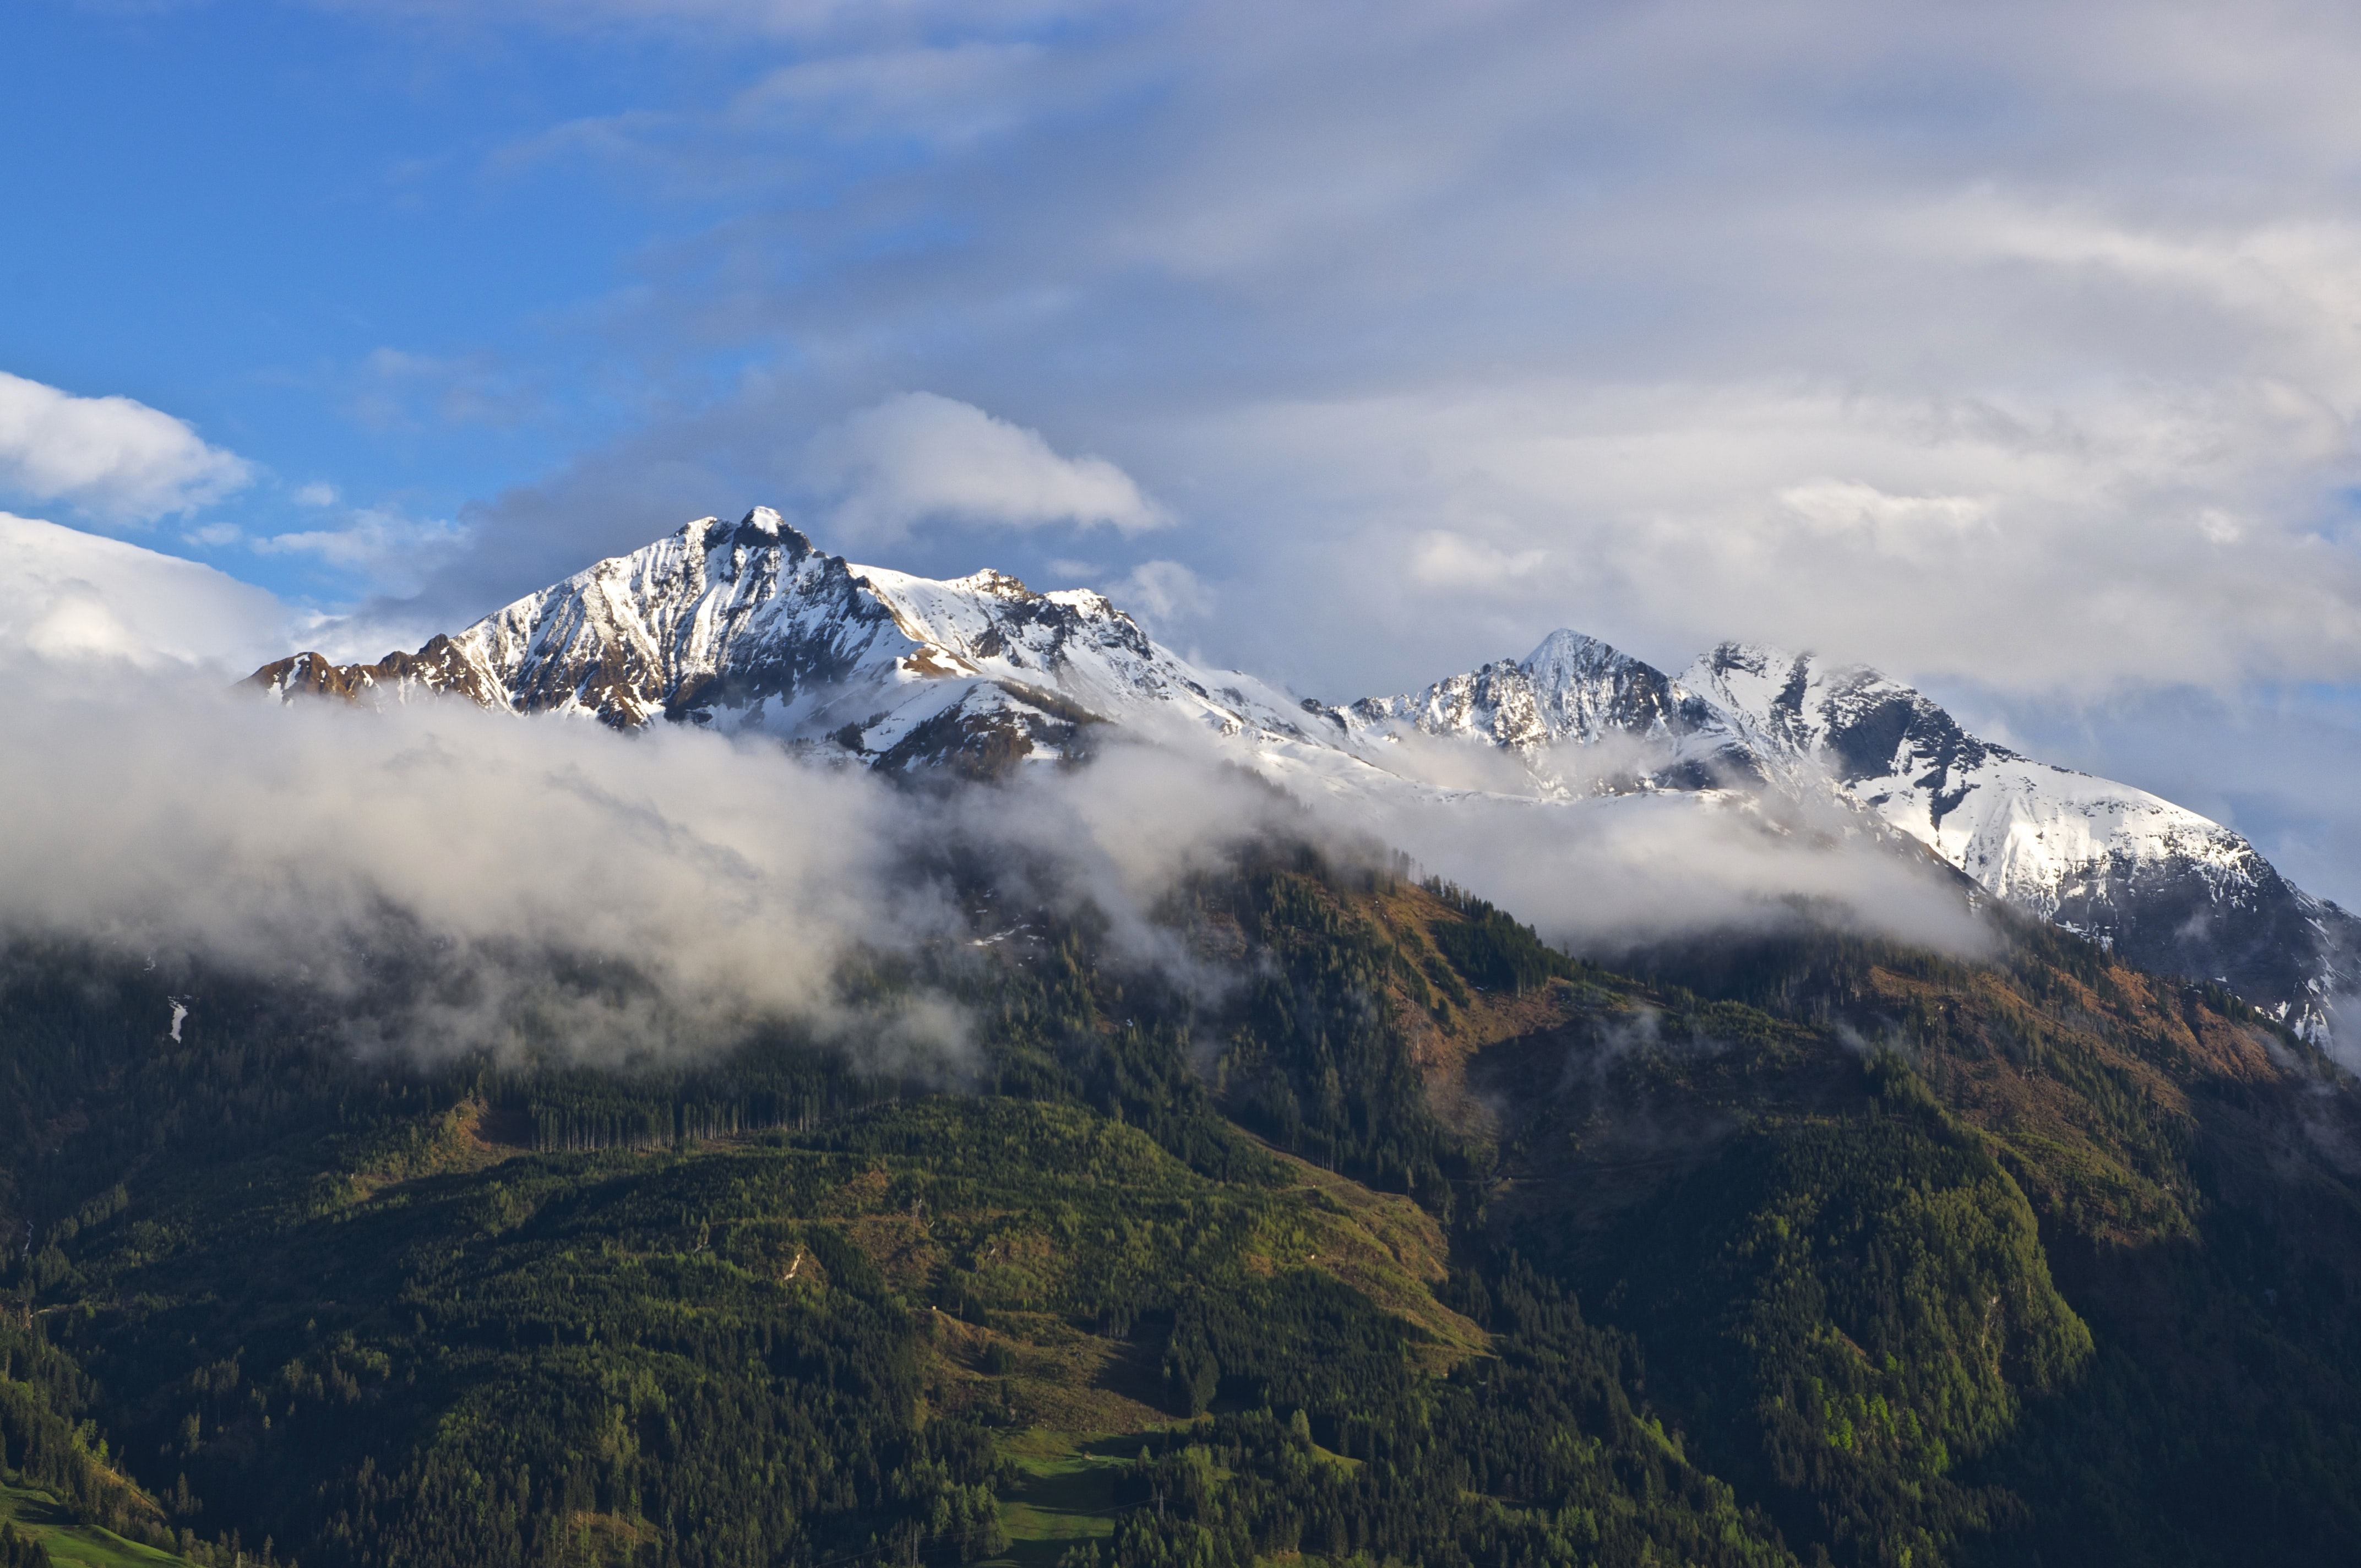 Snow covered mountains with a lush green bottom covered by moving clouds and a blue sky in Fürth.